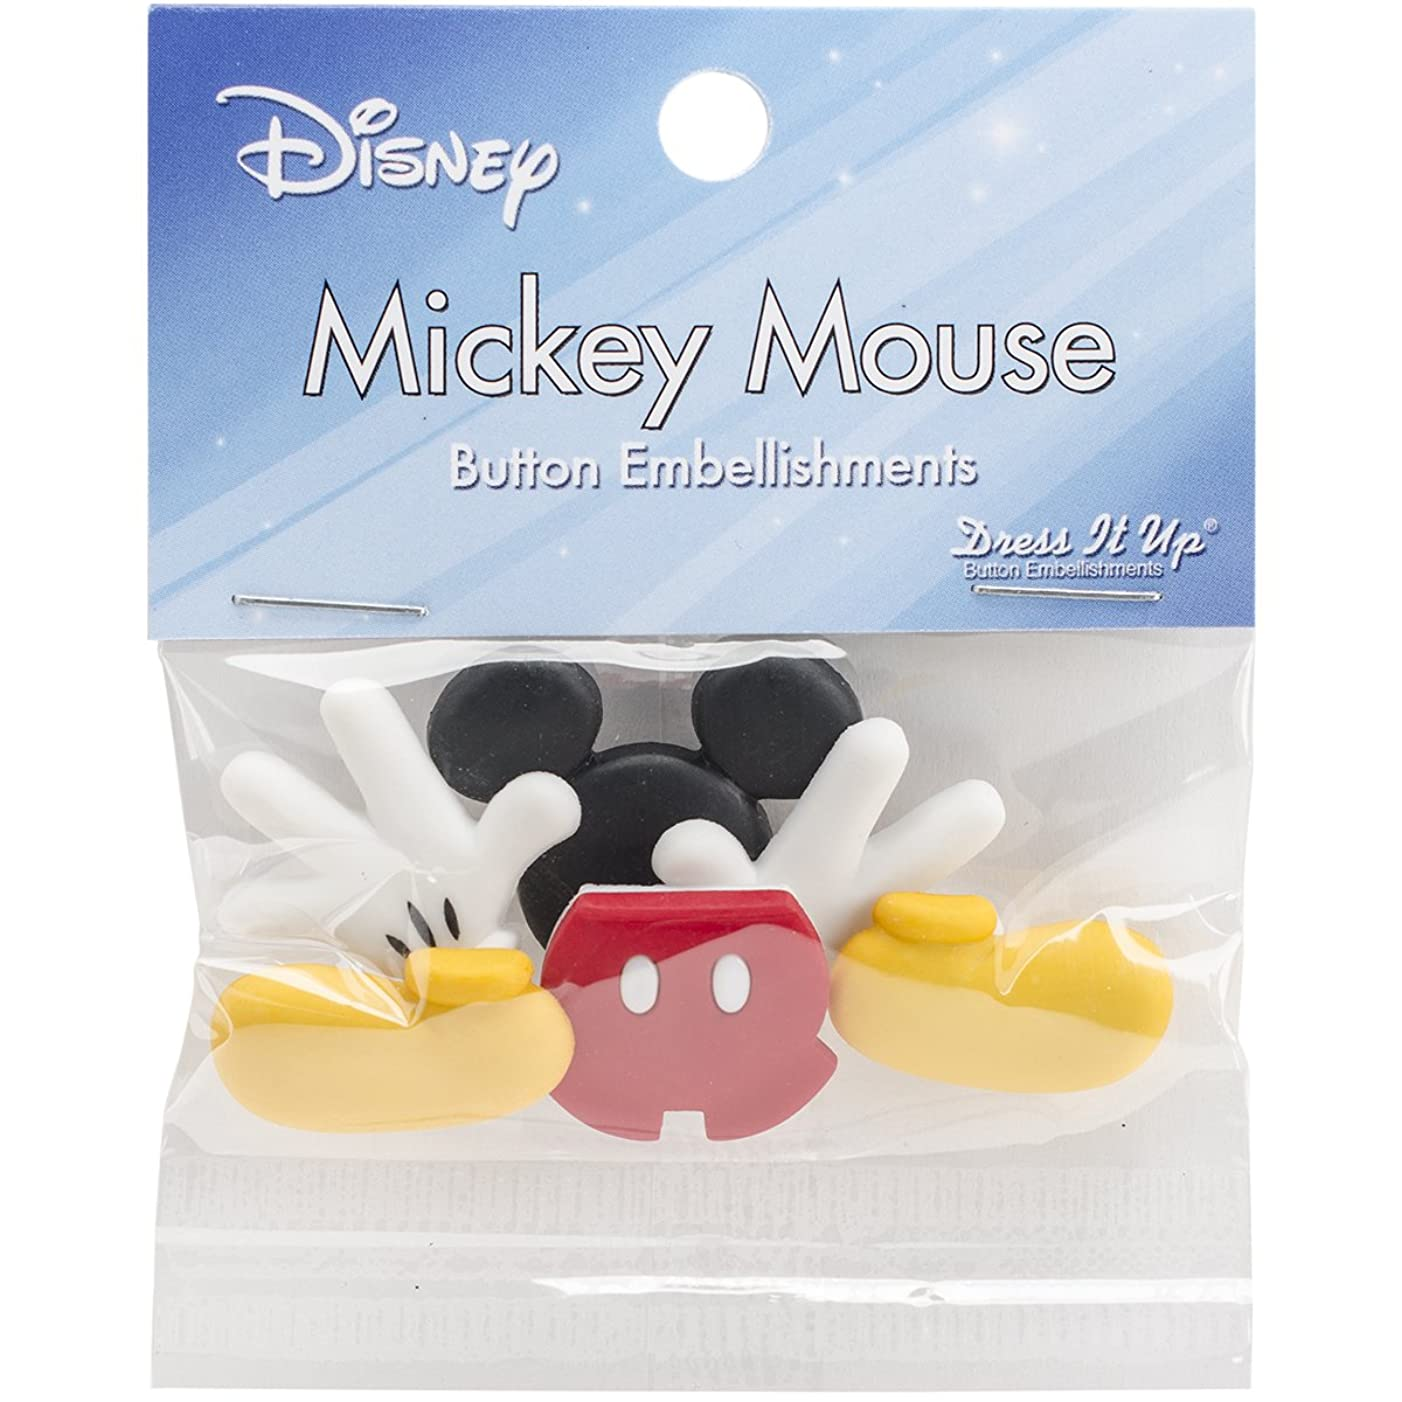 Dress It Up 7720 Disney Button Embellishments, Everything Mickey